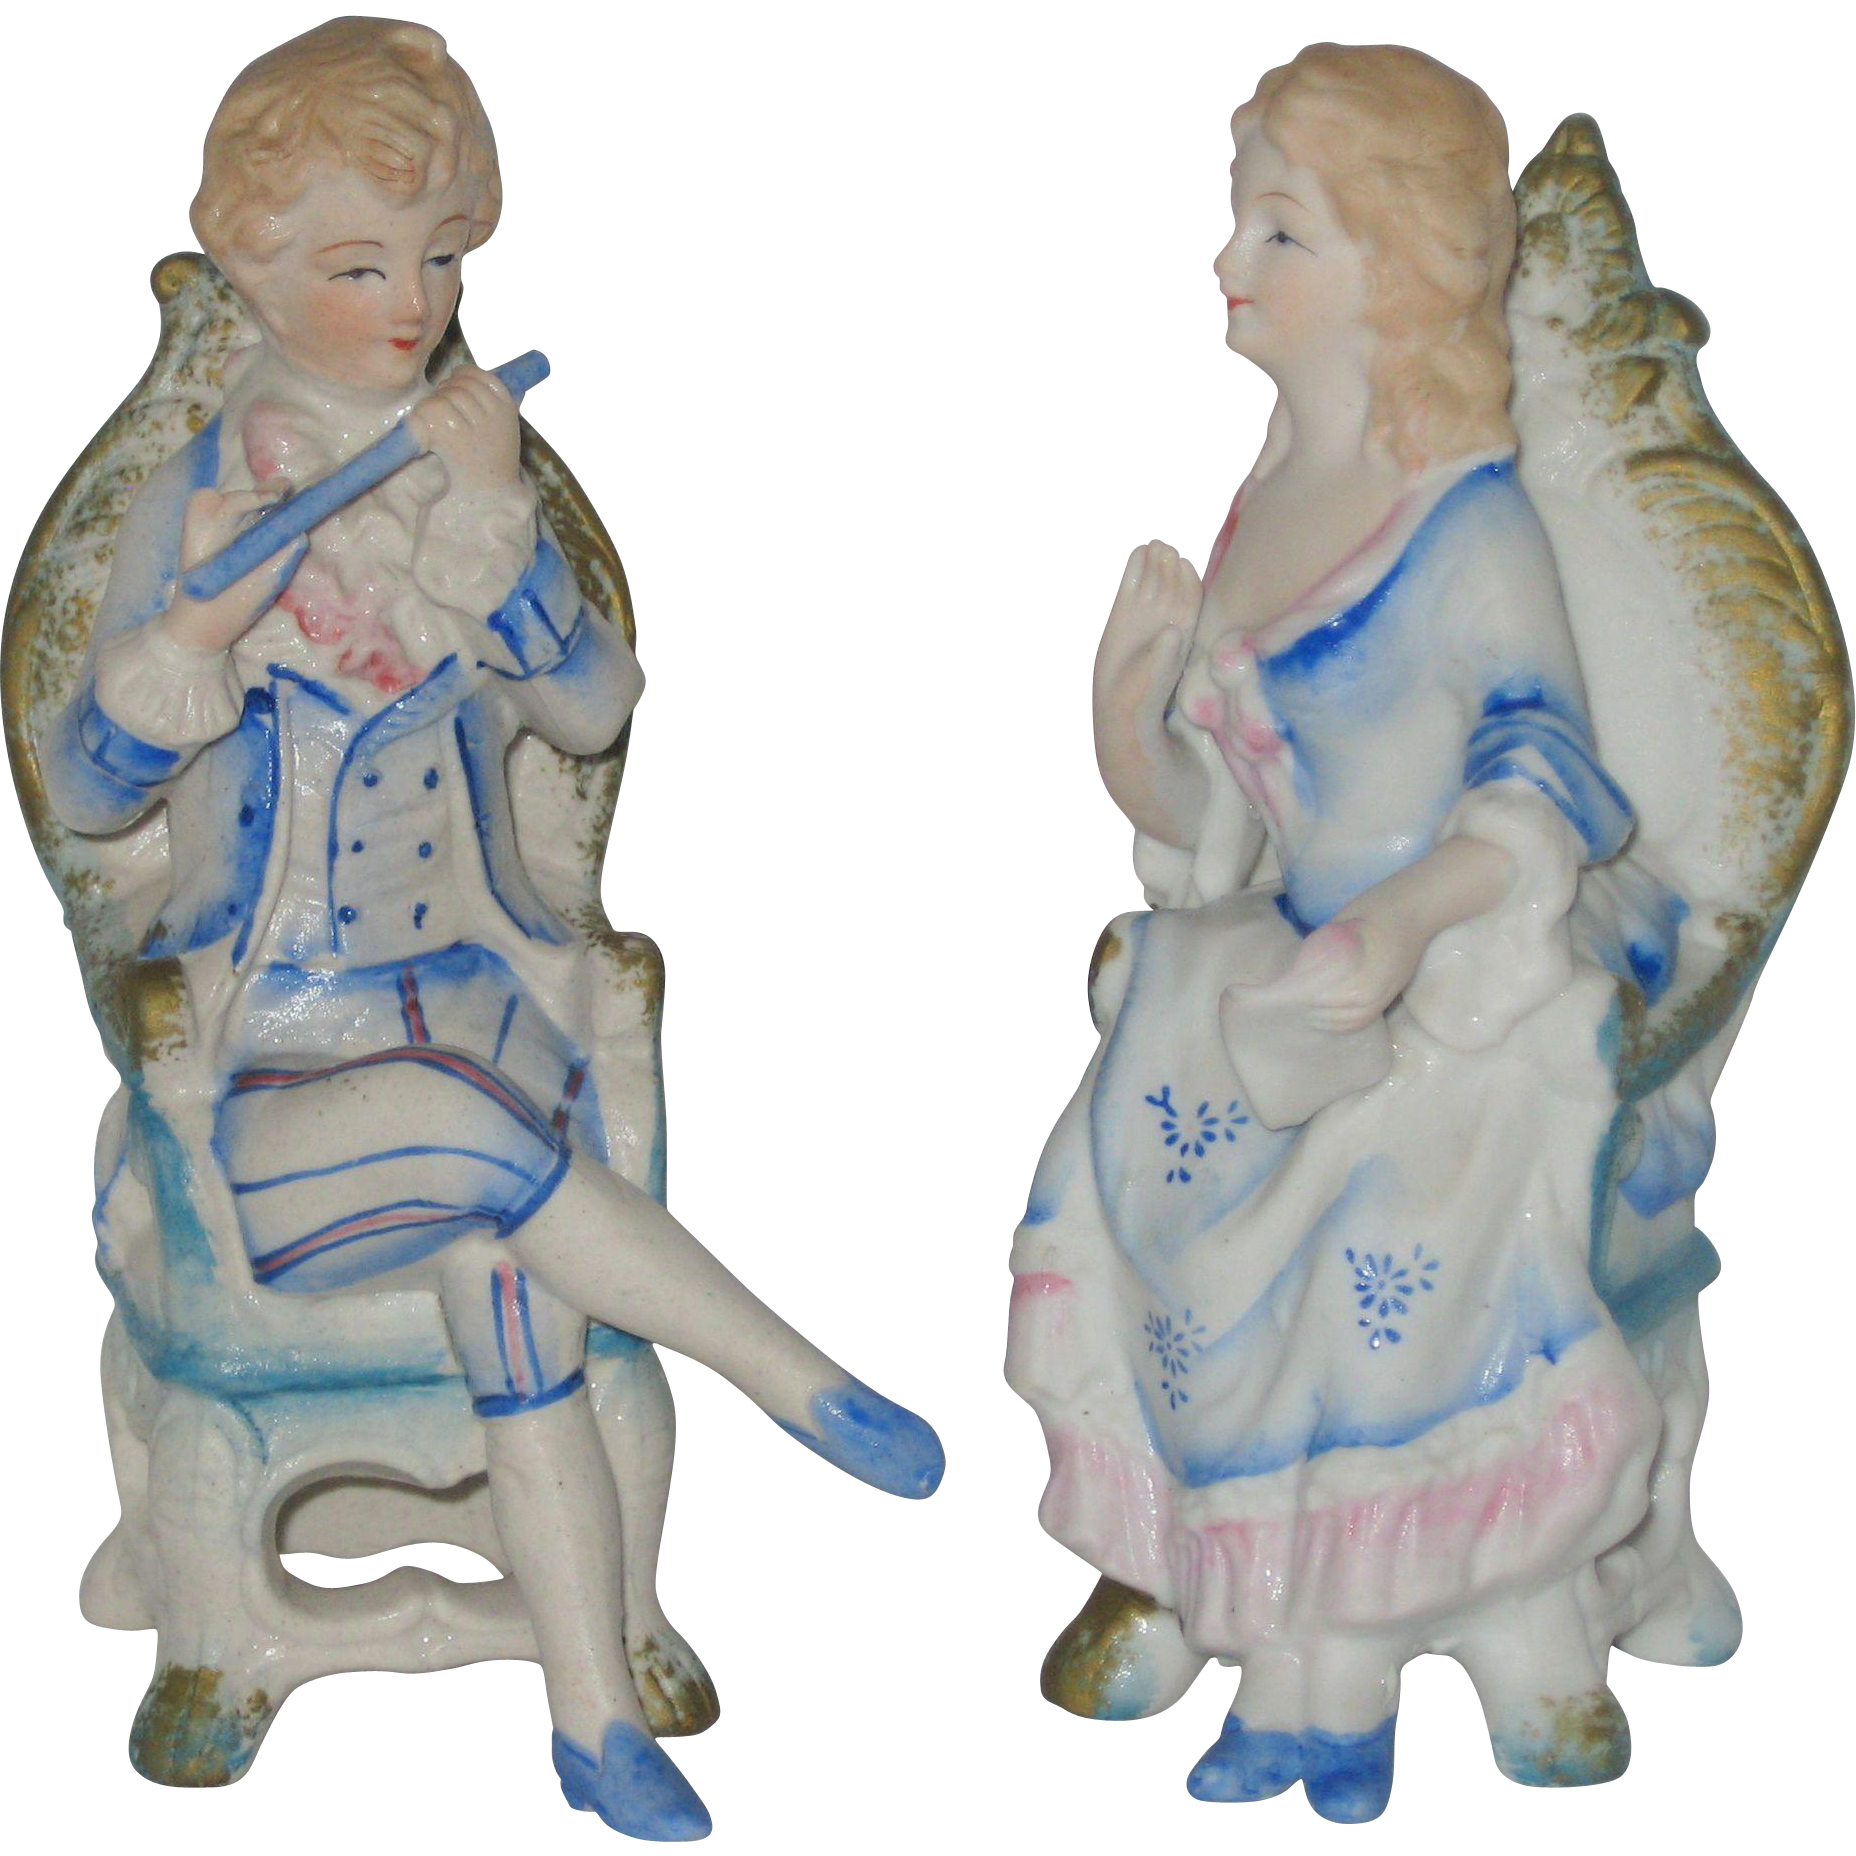 Pair of Bisque Porcelain Figurines - Musical Theme